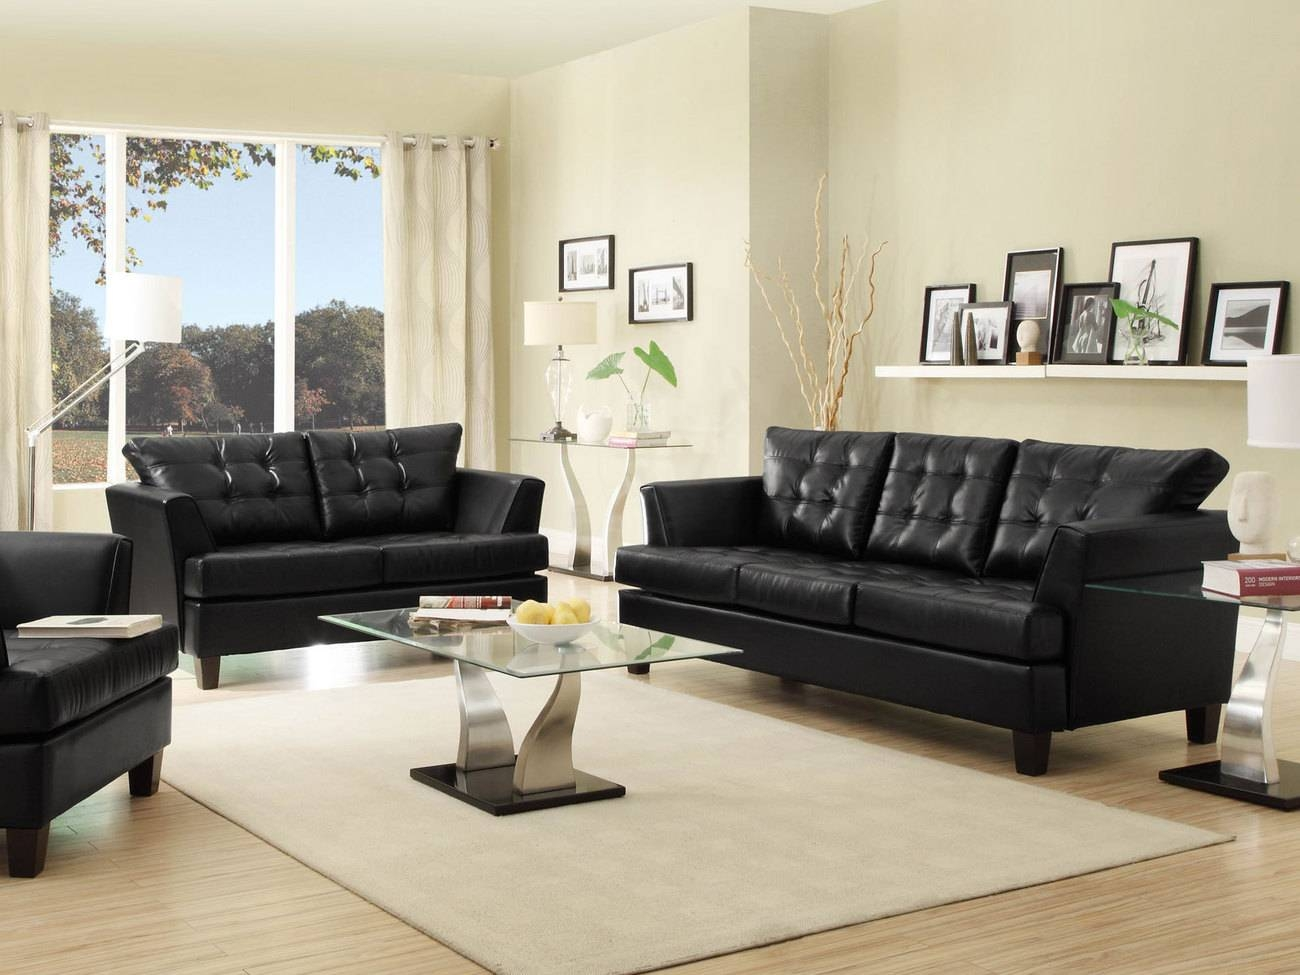 Sofa Living Room Decorating Ideas With Black Leather Furniture regarding Black Sofas for Living Room (Image 15 of 15)